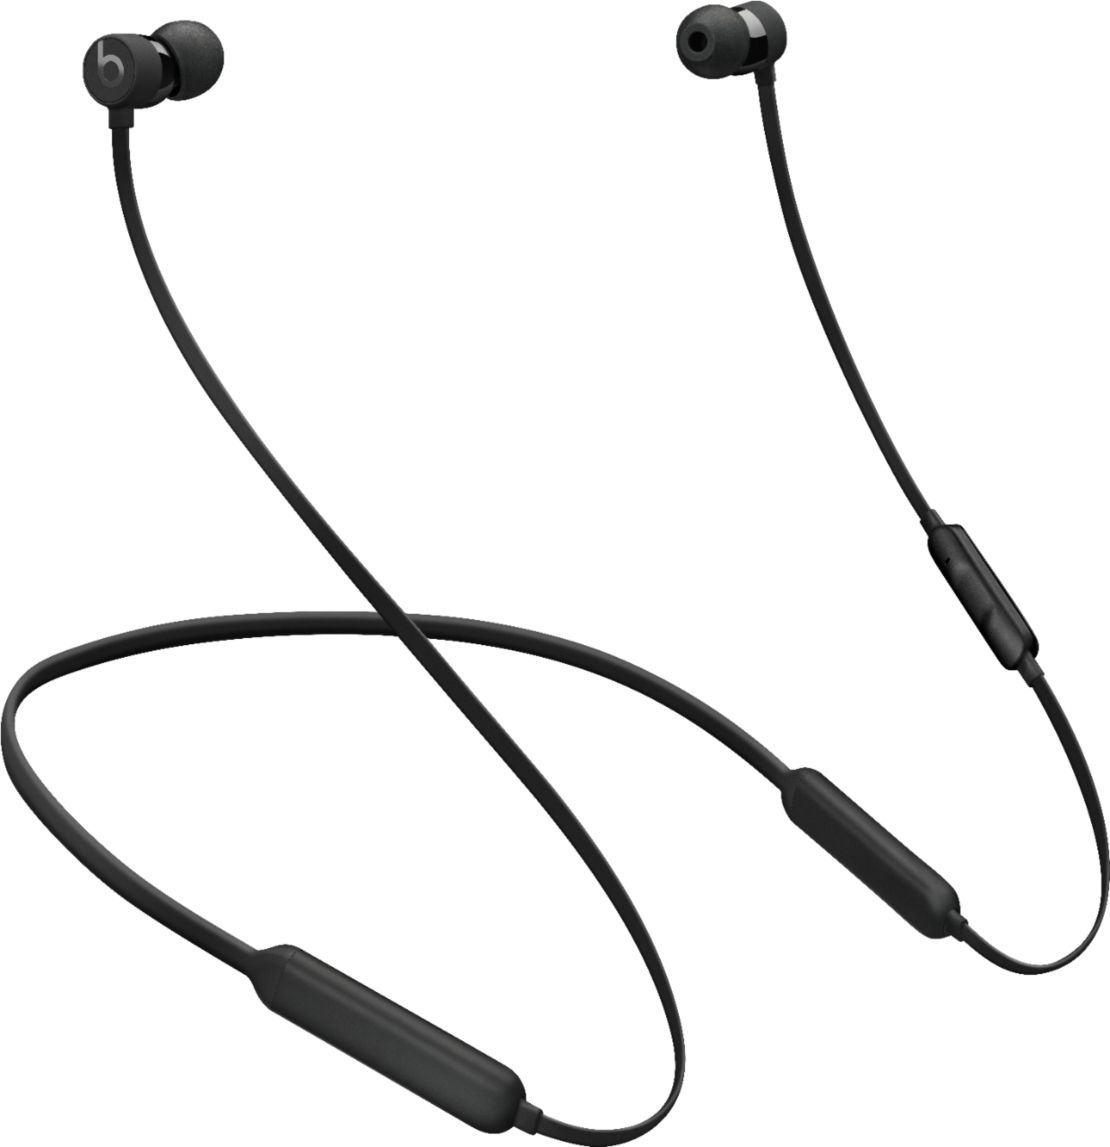 Beats by Dr. Dre - BeatsX Earphones - Black